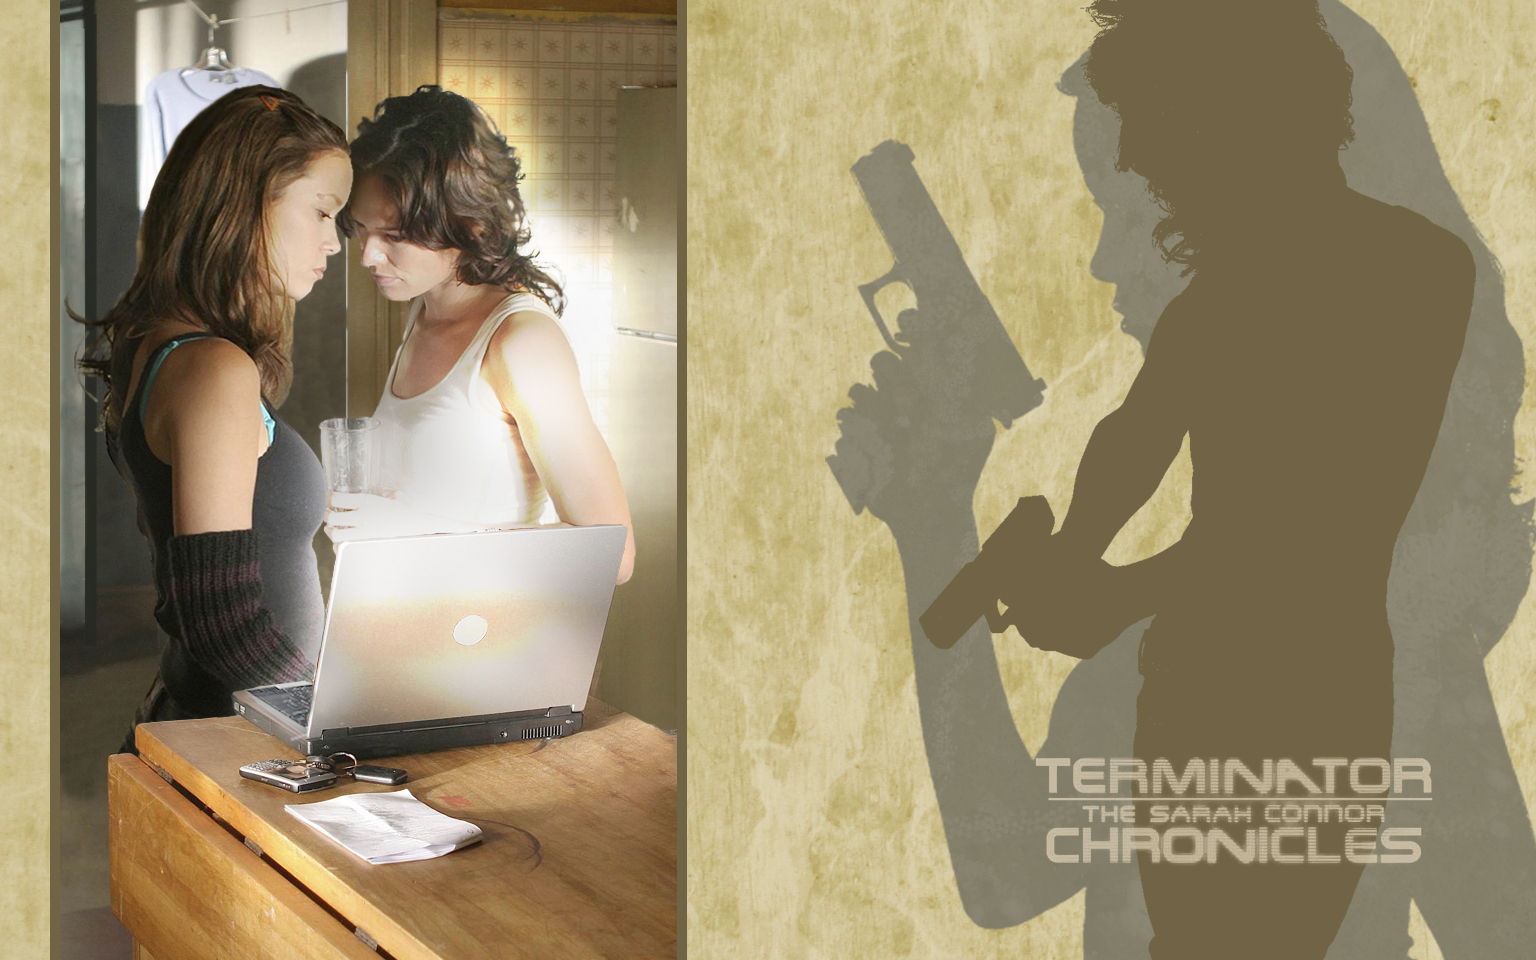 The Sarah Connor Chronicles wallpaper by Torch.